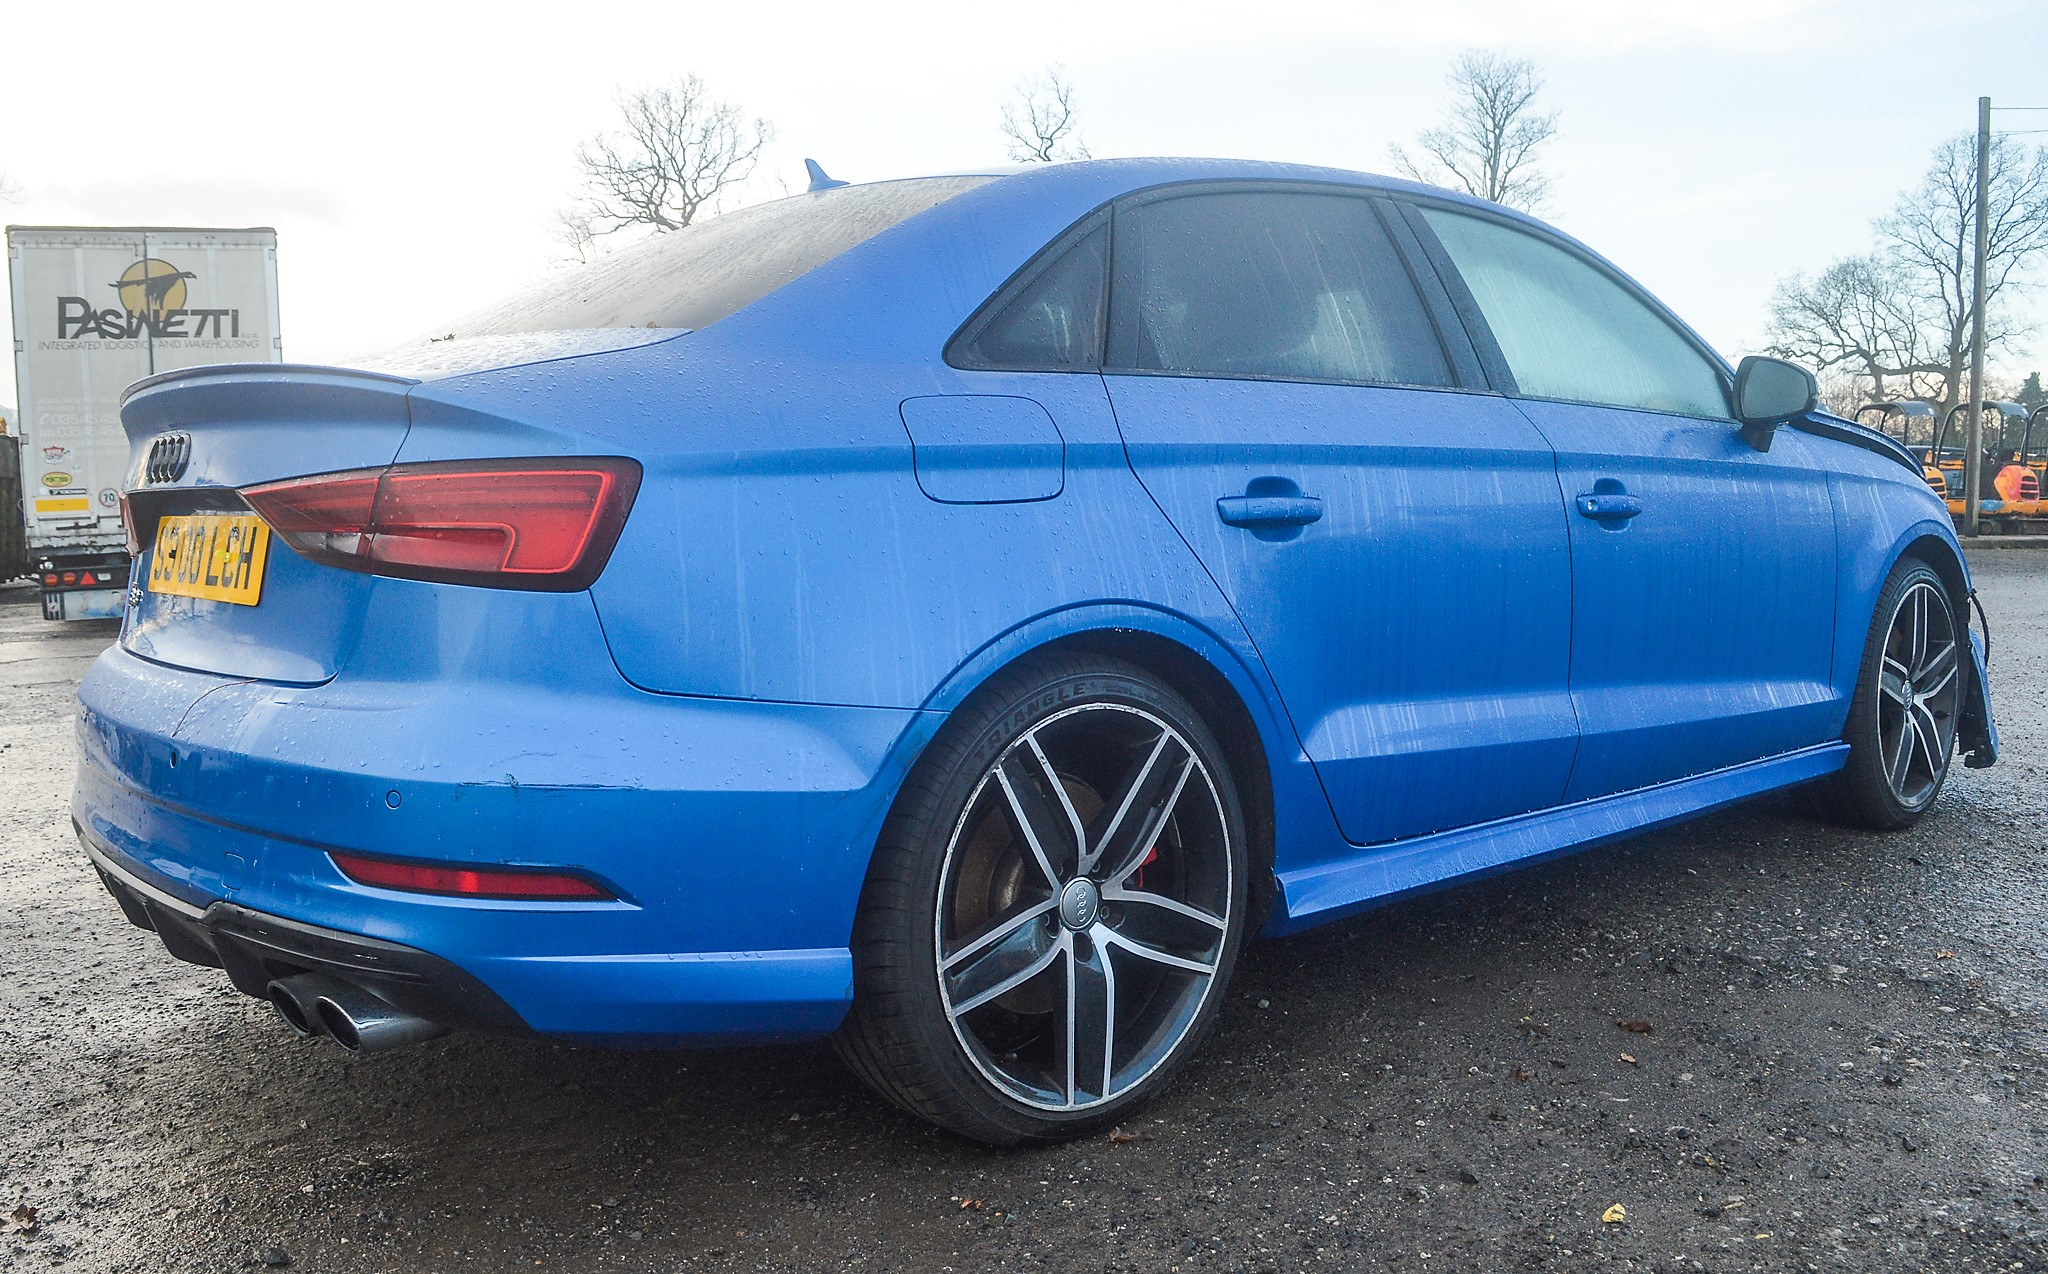 Lot 19 - Audi S3 TFSi Quattro Black Edition 4 door saloon car Registration Number: S300 LCH Date of